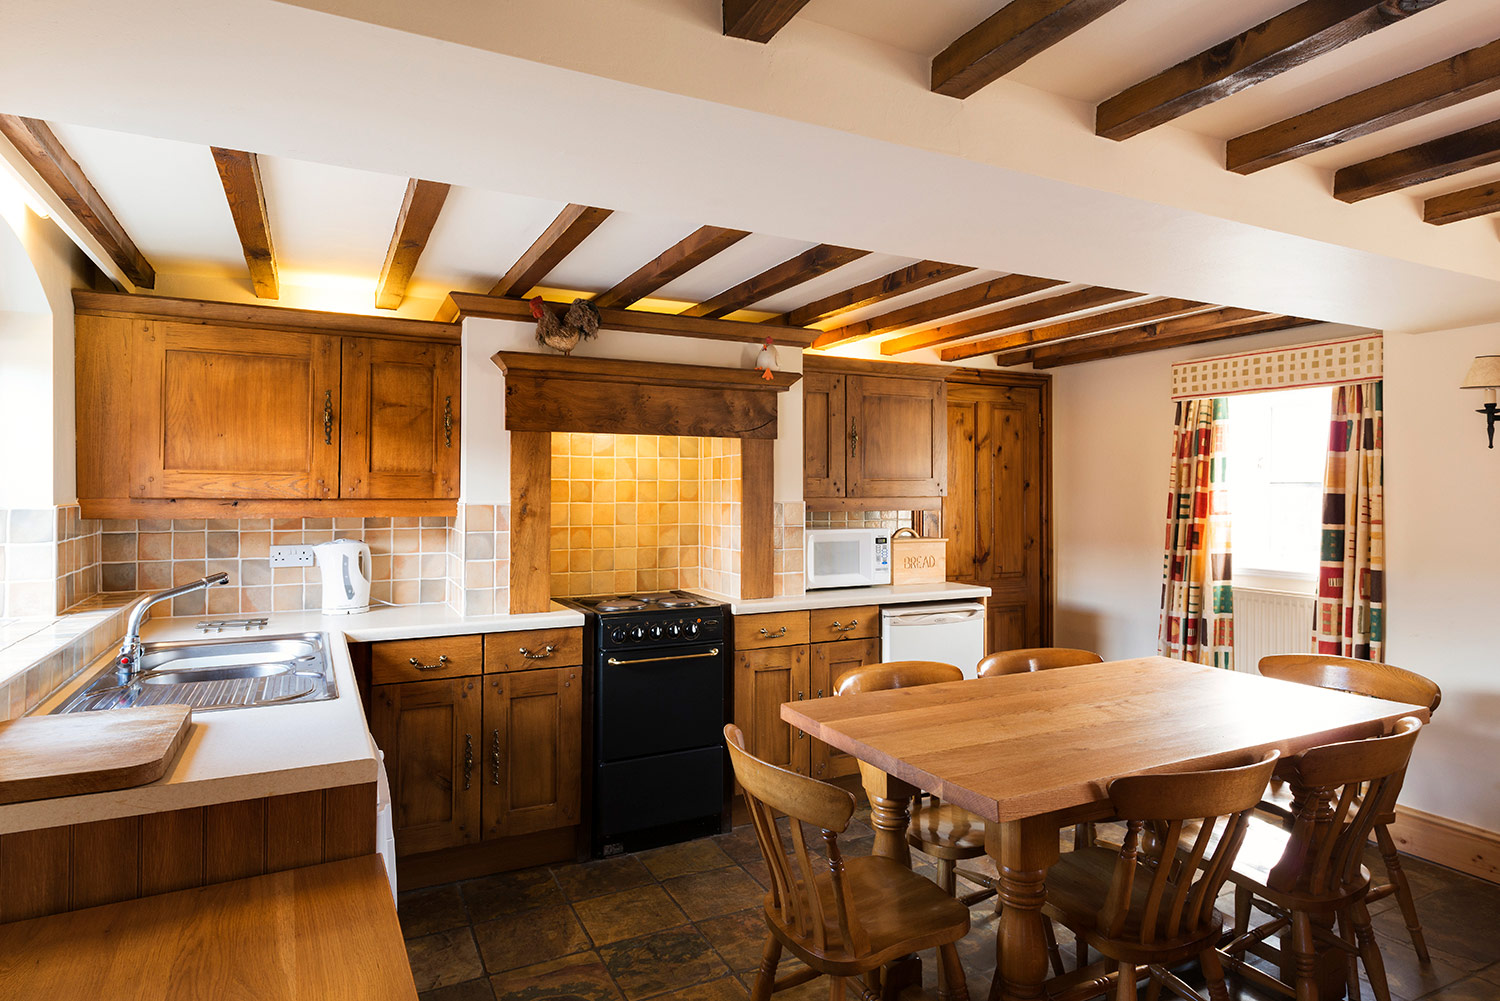 Country style living in our luxury holiday cottages in the heart of England | Upper Rectory Farm Cottages